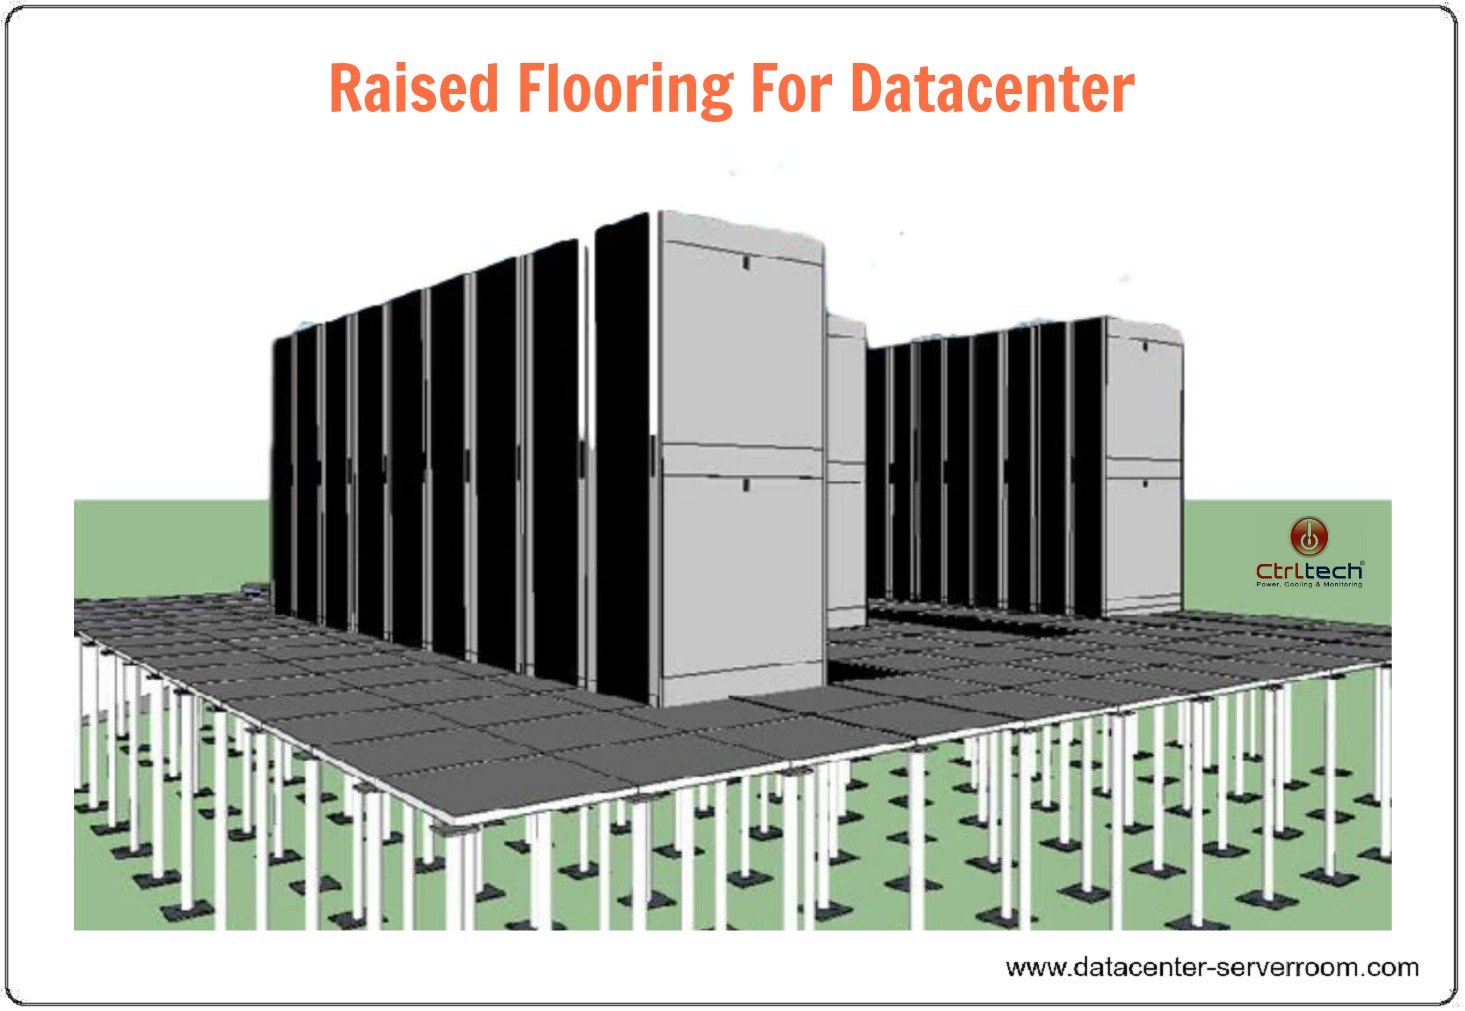 Raised Flooring For Datacenter.jpg